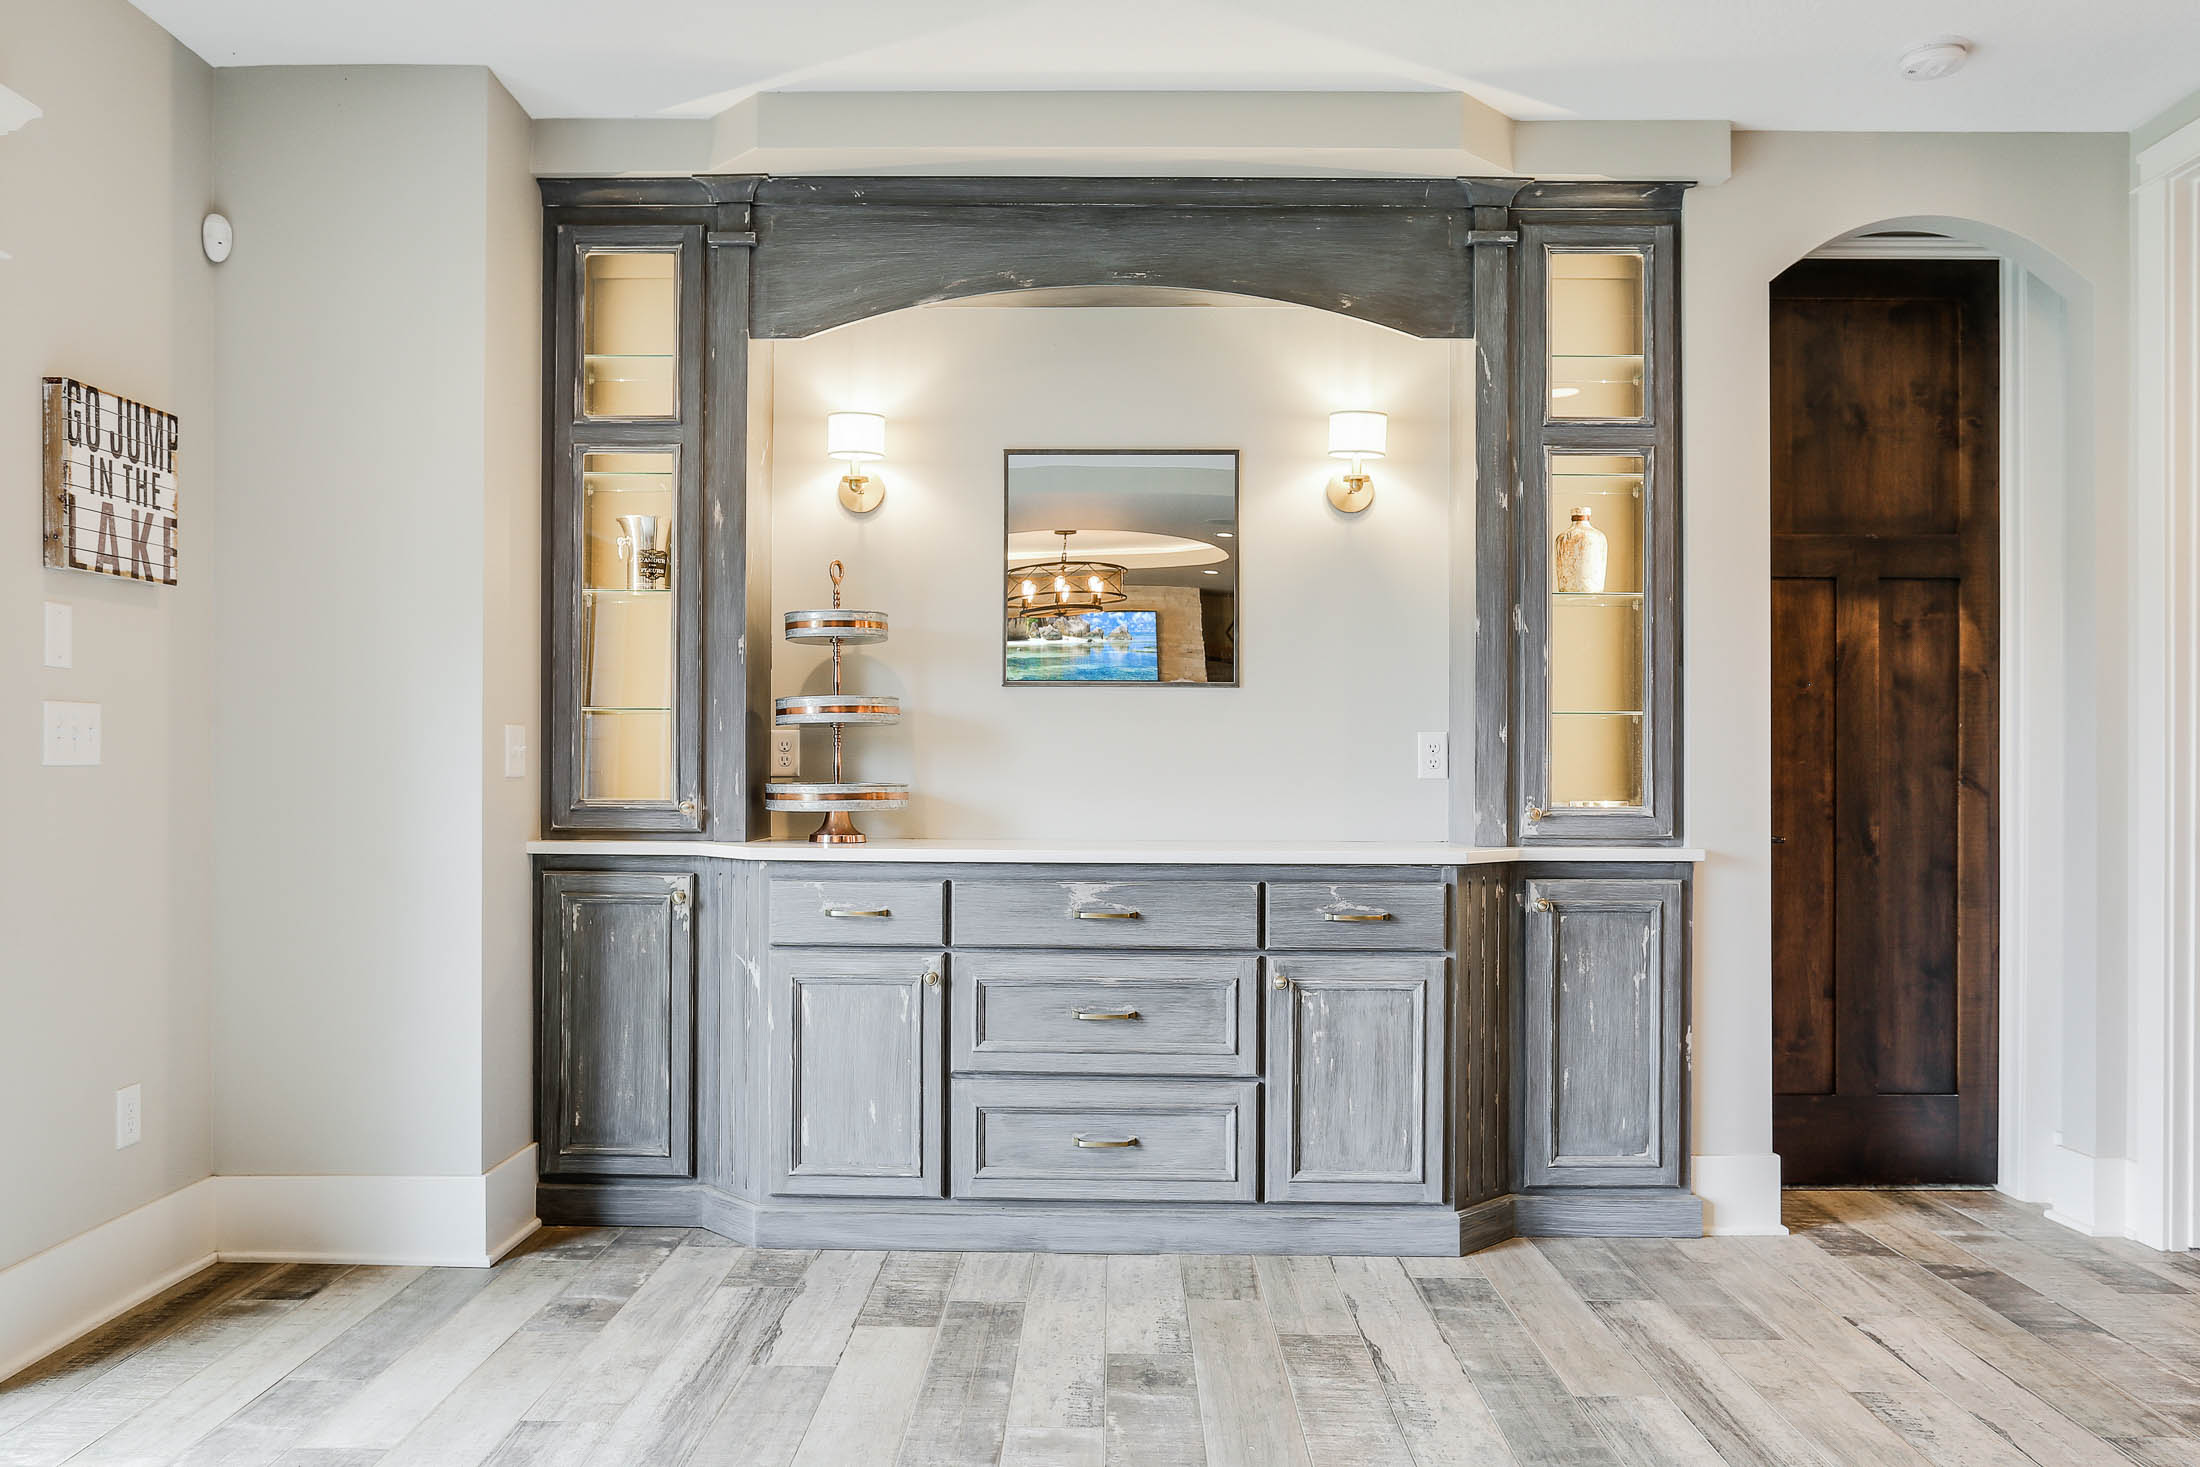 Built-in buffet with distressed enameled cabinets